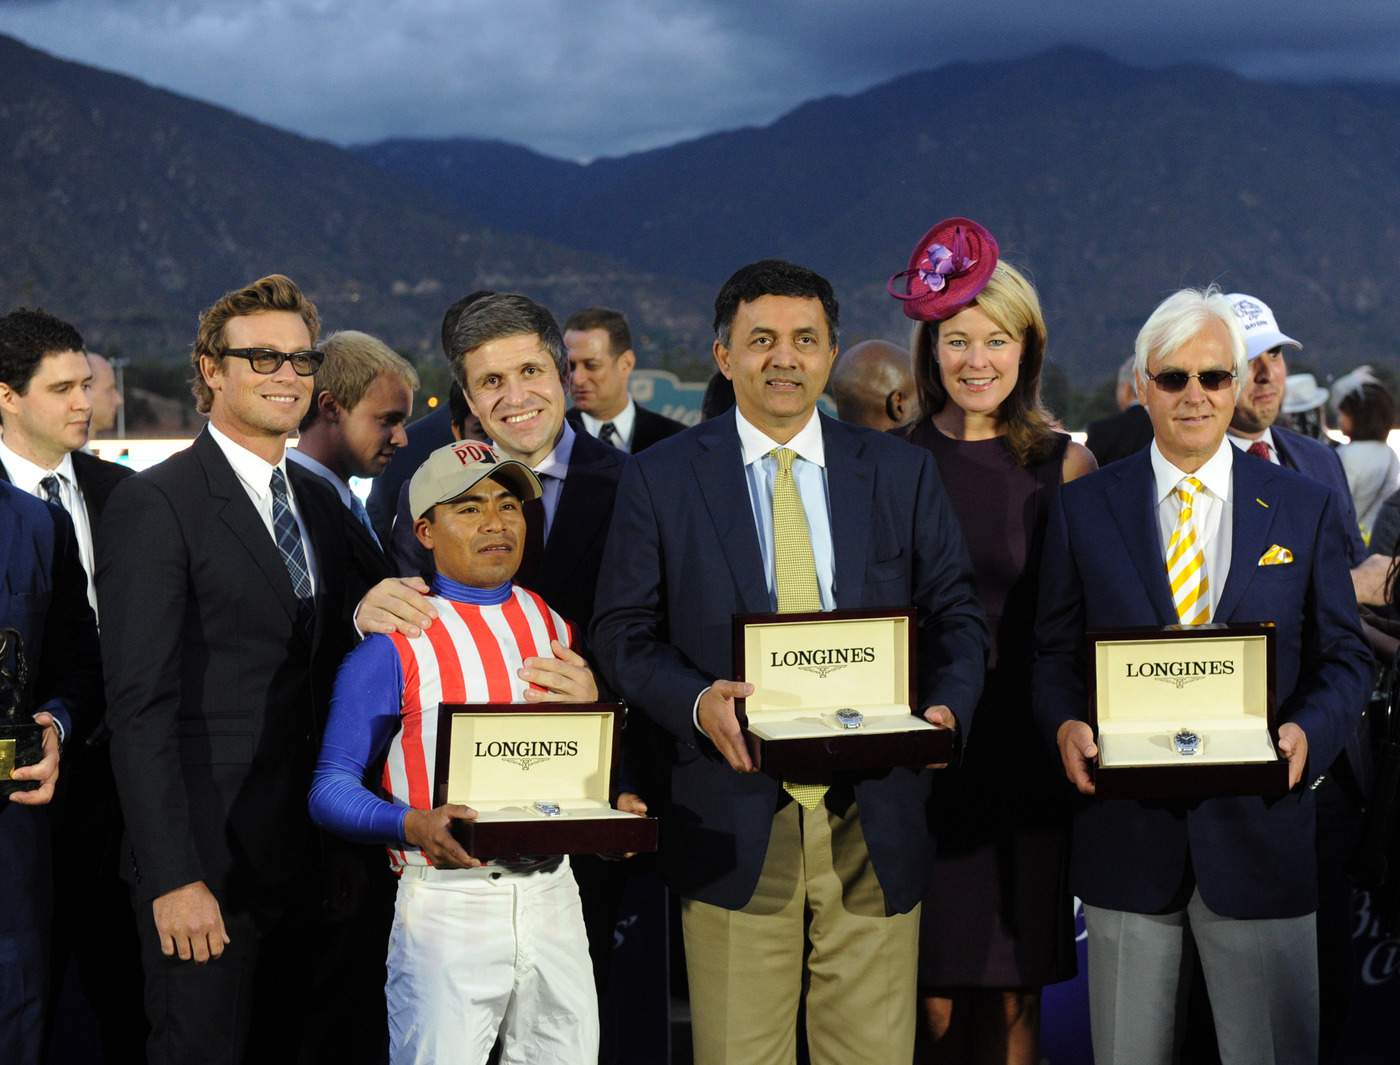 Longines Flat Racing Event: Longines Times the Breeders' Cup World Championships 2